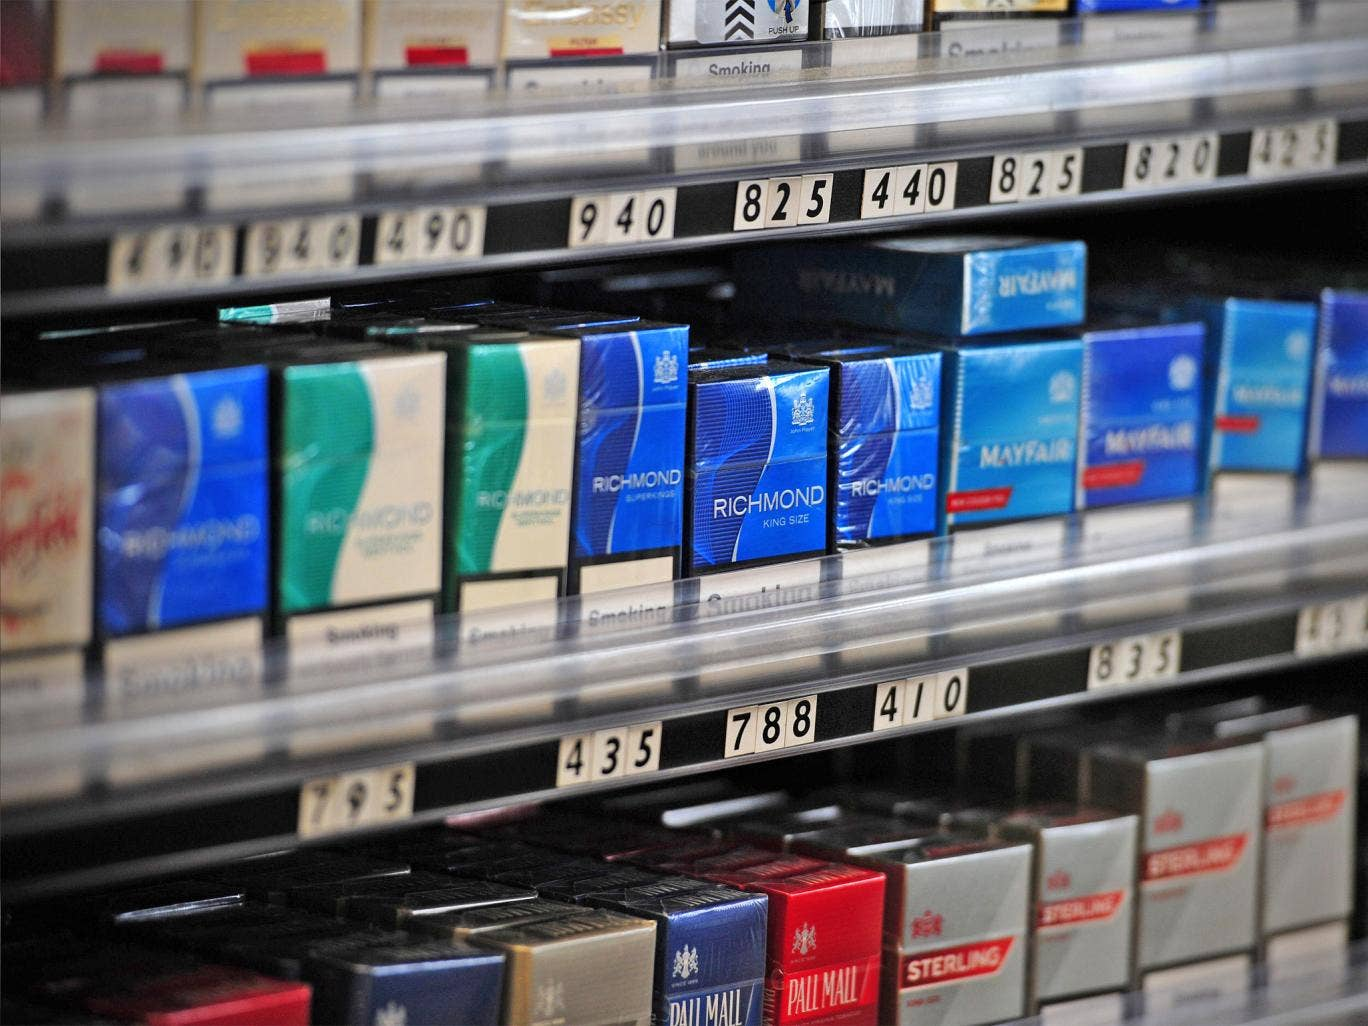 Britain last week postponed plans to introduce plain packaging on cigarettes